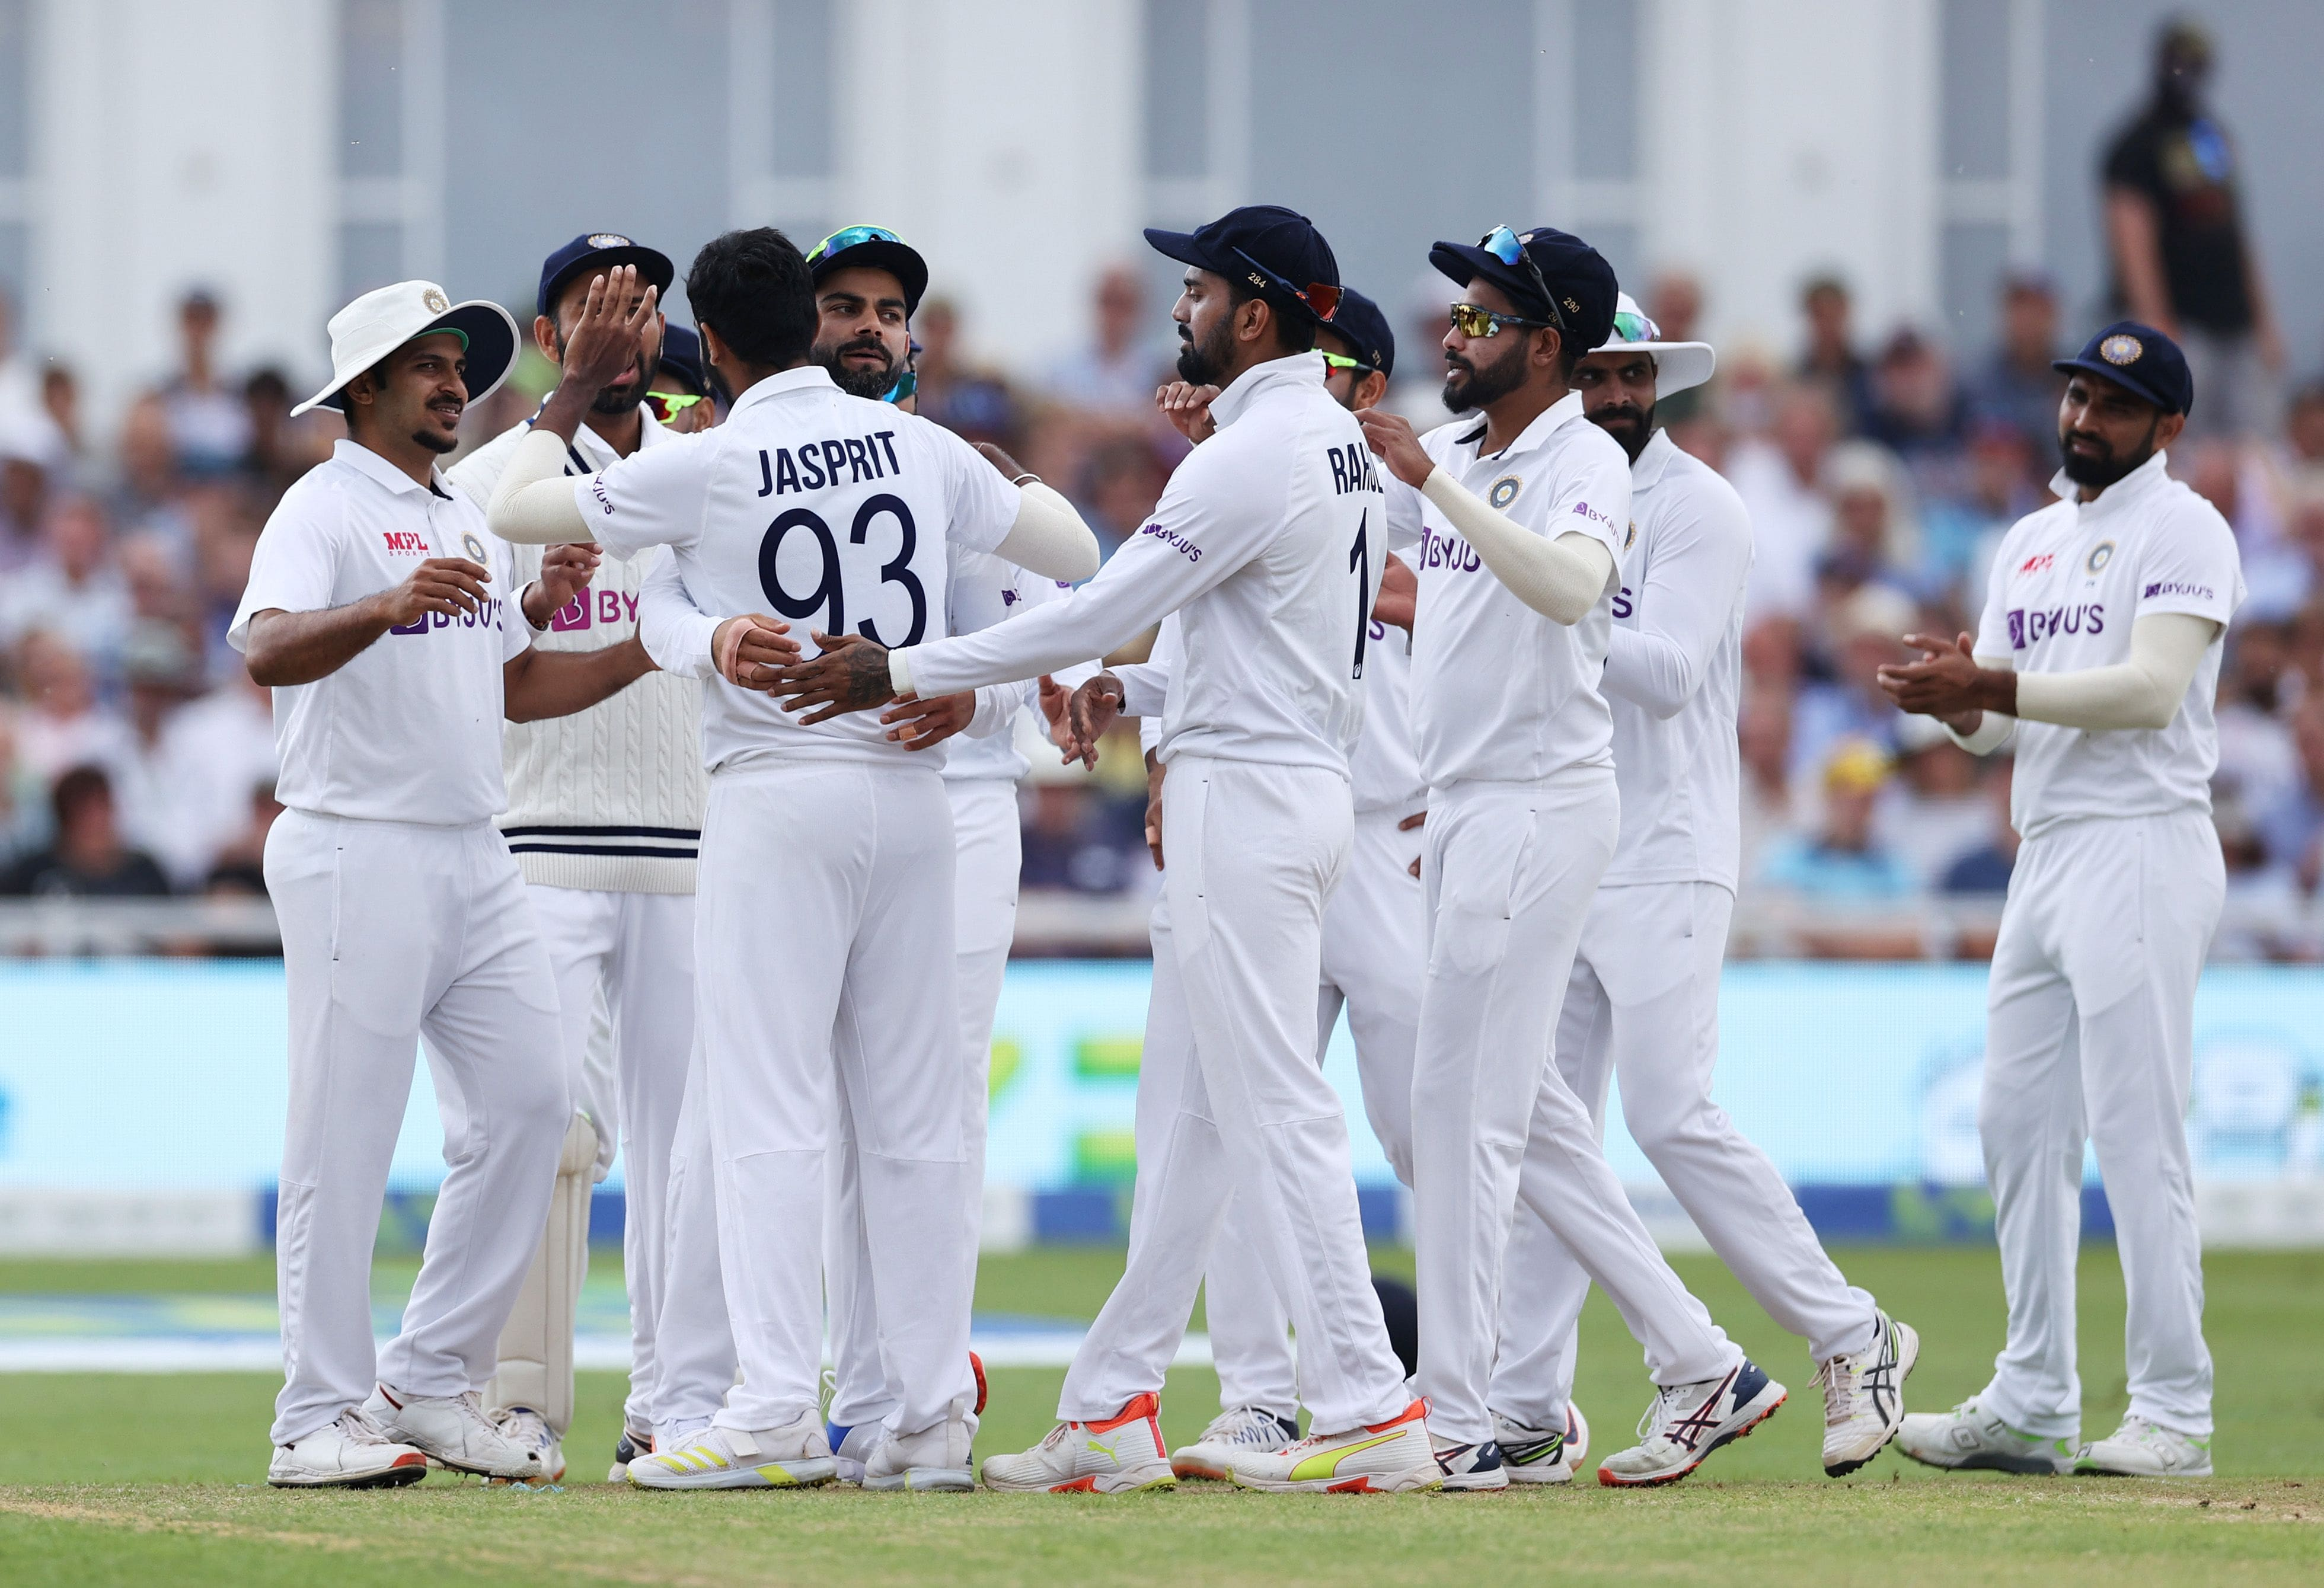 India vs England Match Highlights 1st Test, Day 4 Updates From Trent Bridge: IND on Top in 209 Chase at Stumps